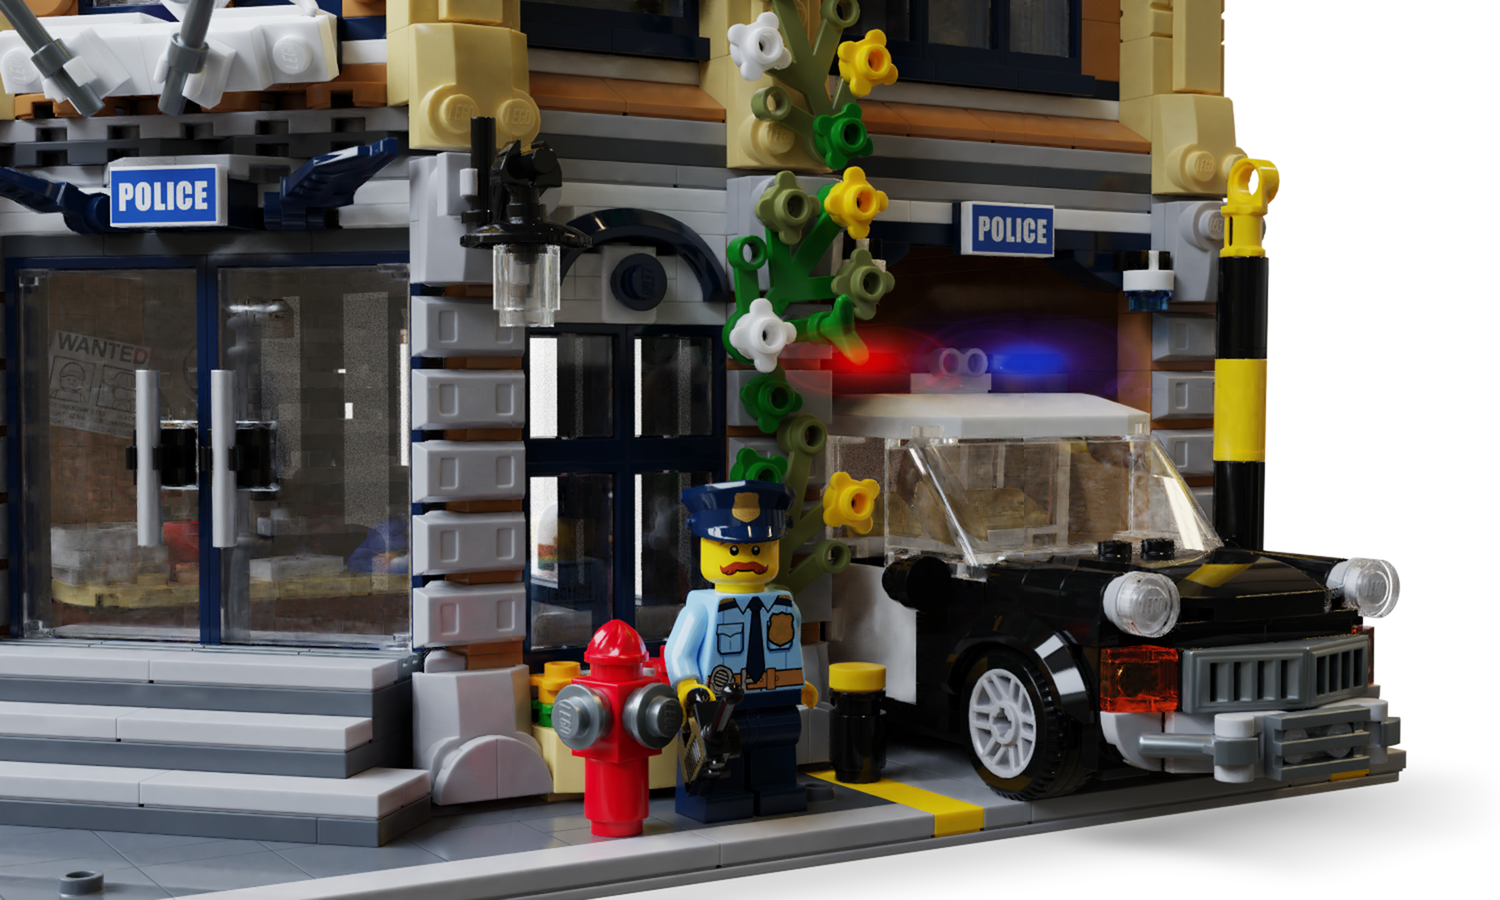 6164266-Police_Station_7-thumbnail-full.